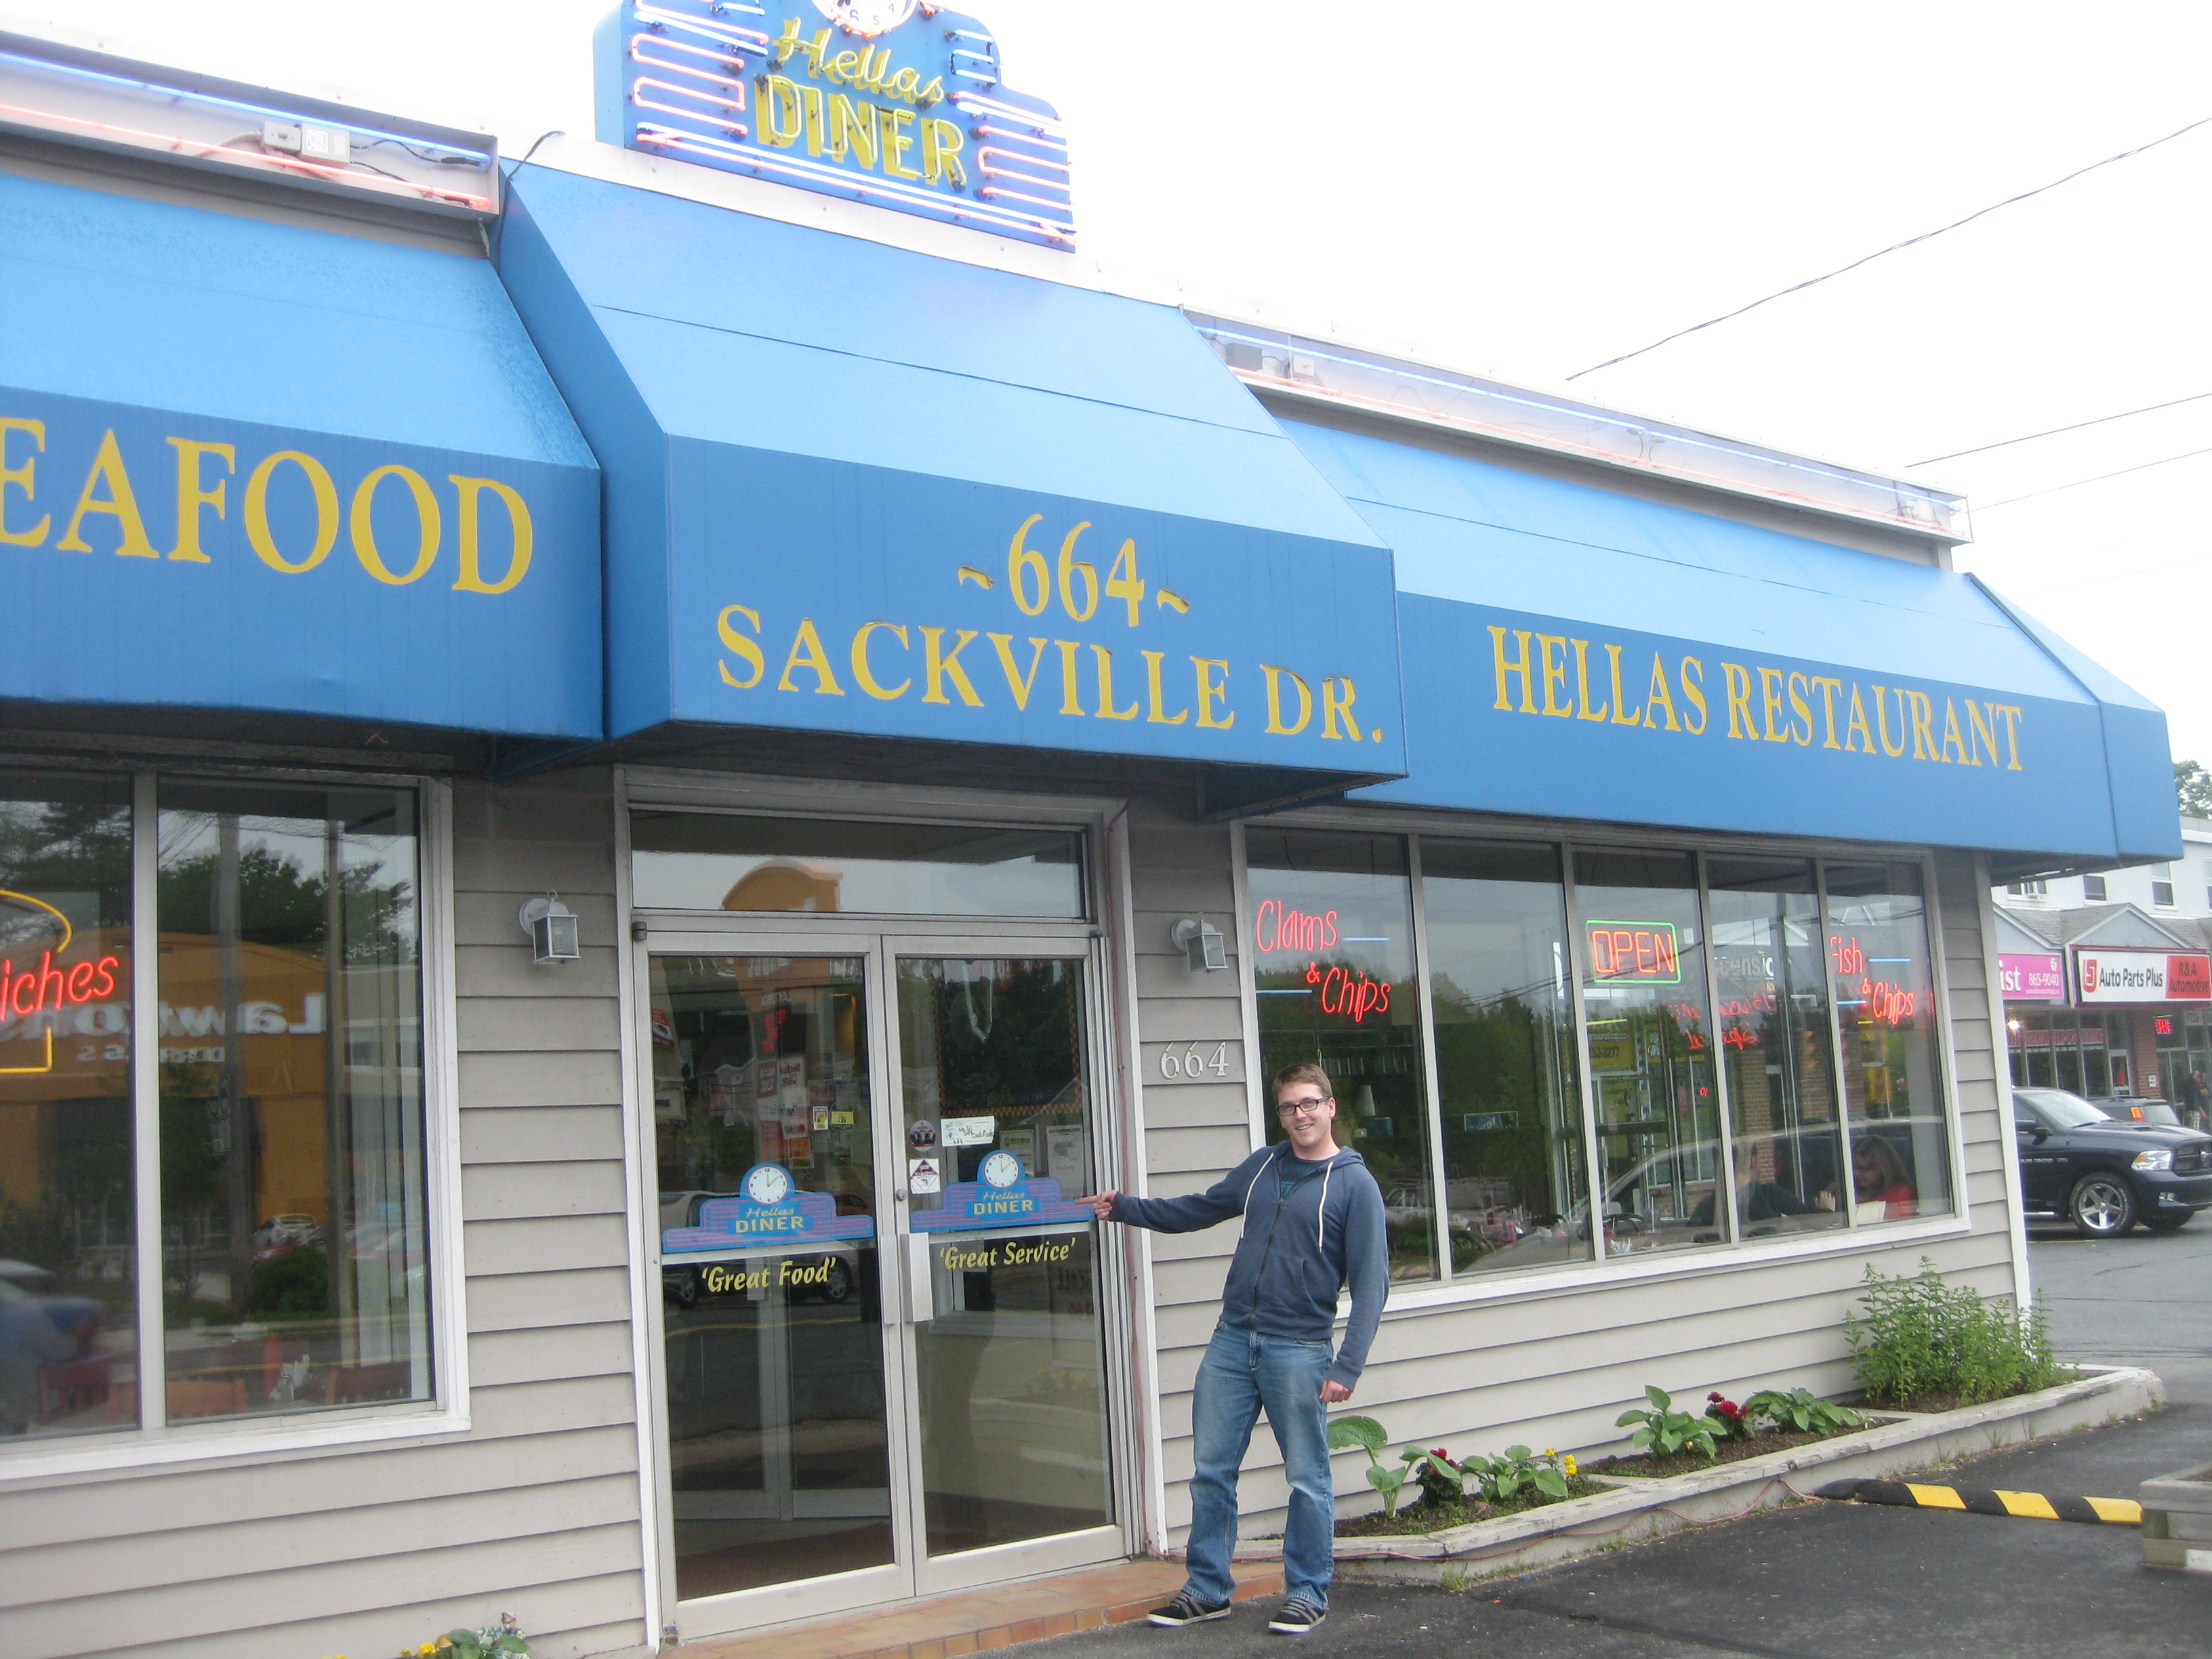 Sackville Restaurant A Londra : Hfx fish n chips quest hellas restaurant eat this town